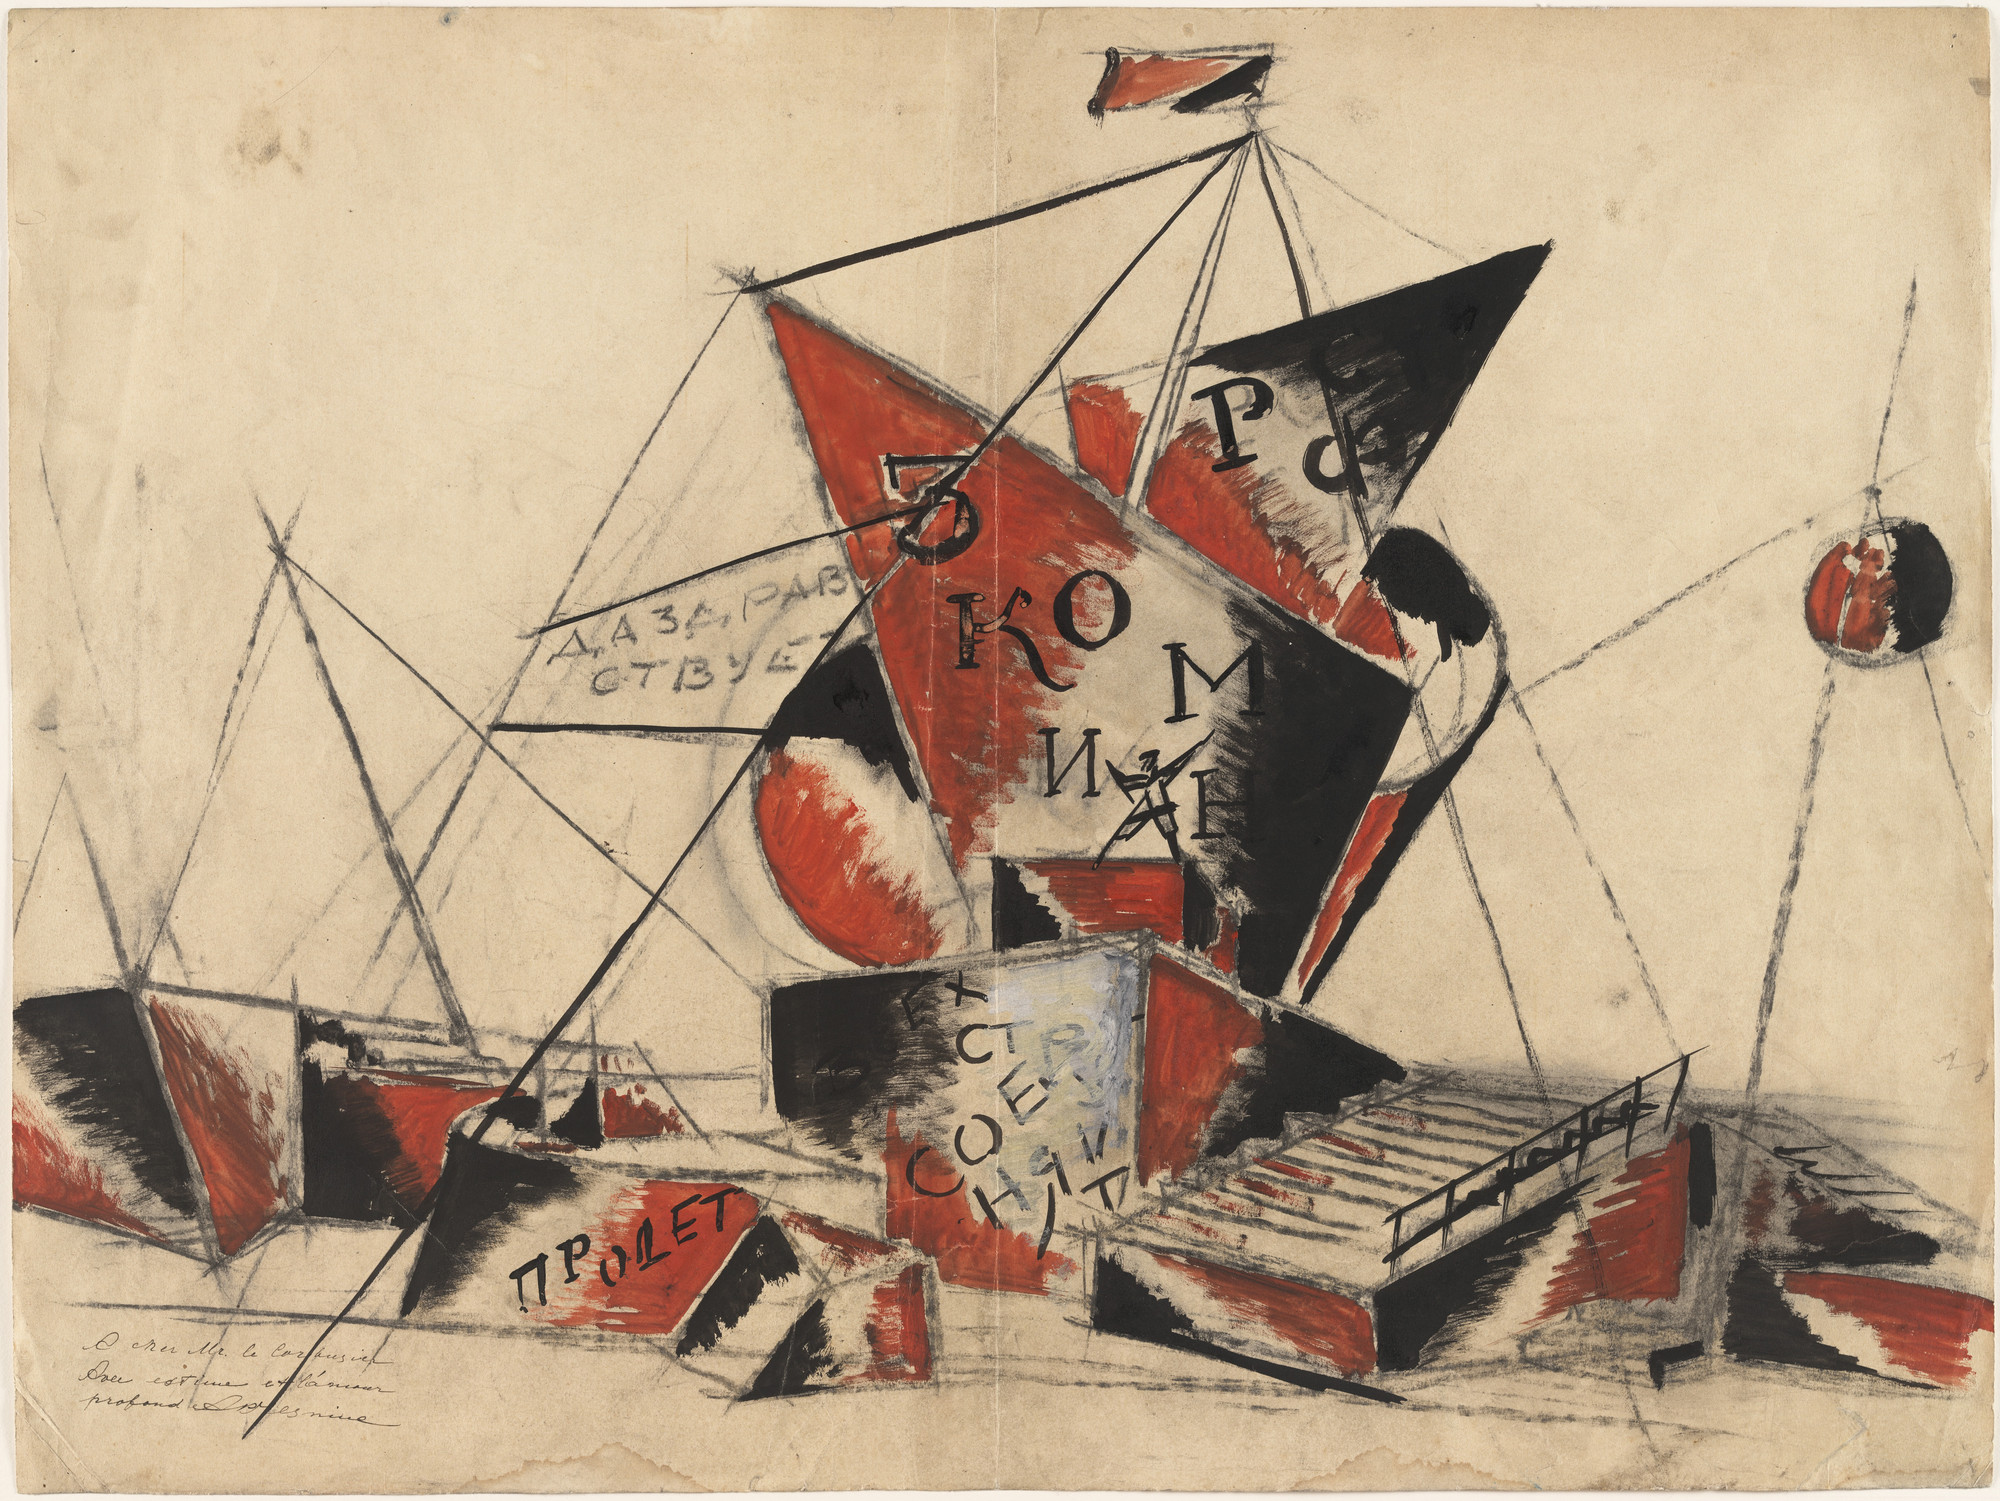 Aleksandr Vesnin. Proposal for a Monument to the Third International. 1921